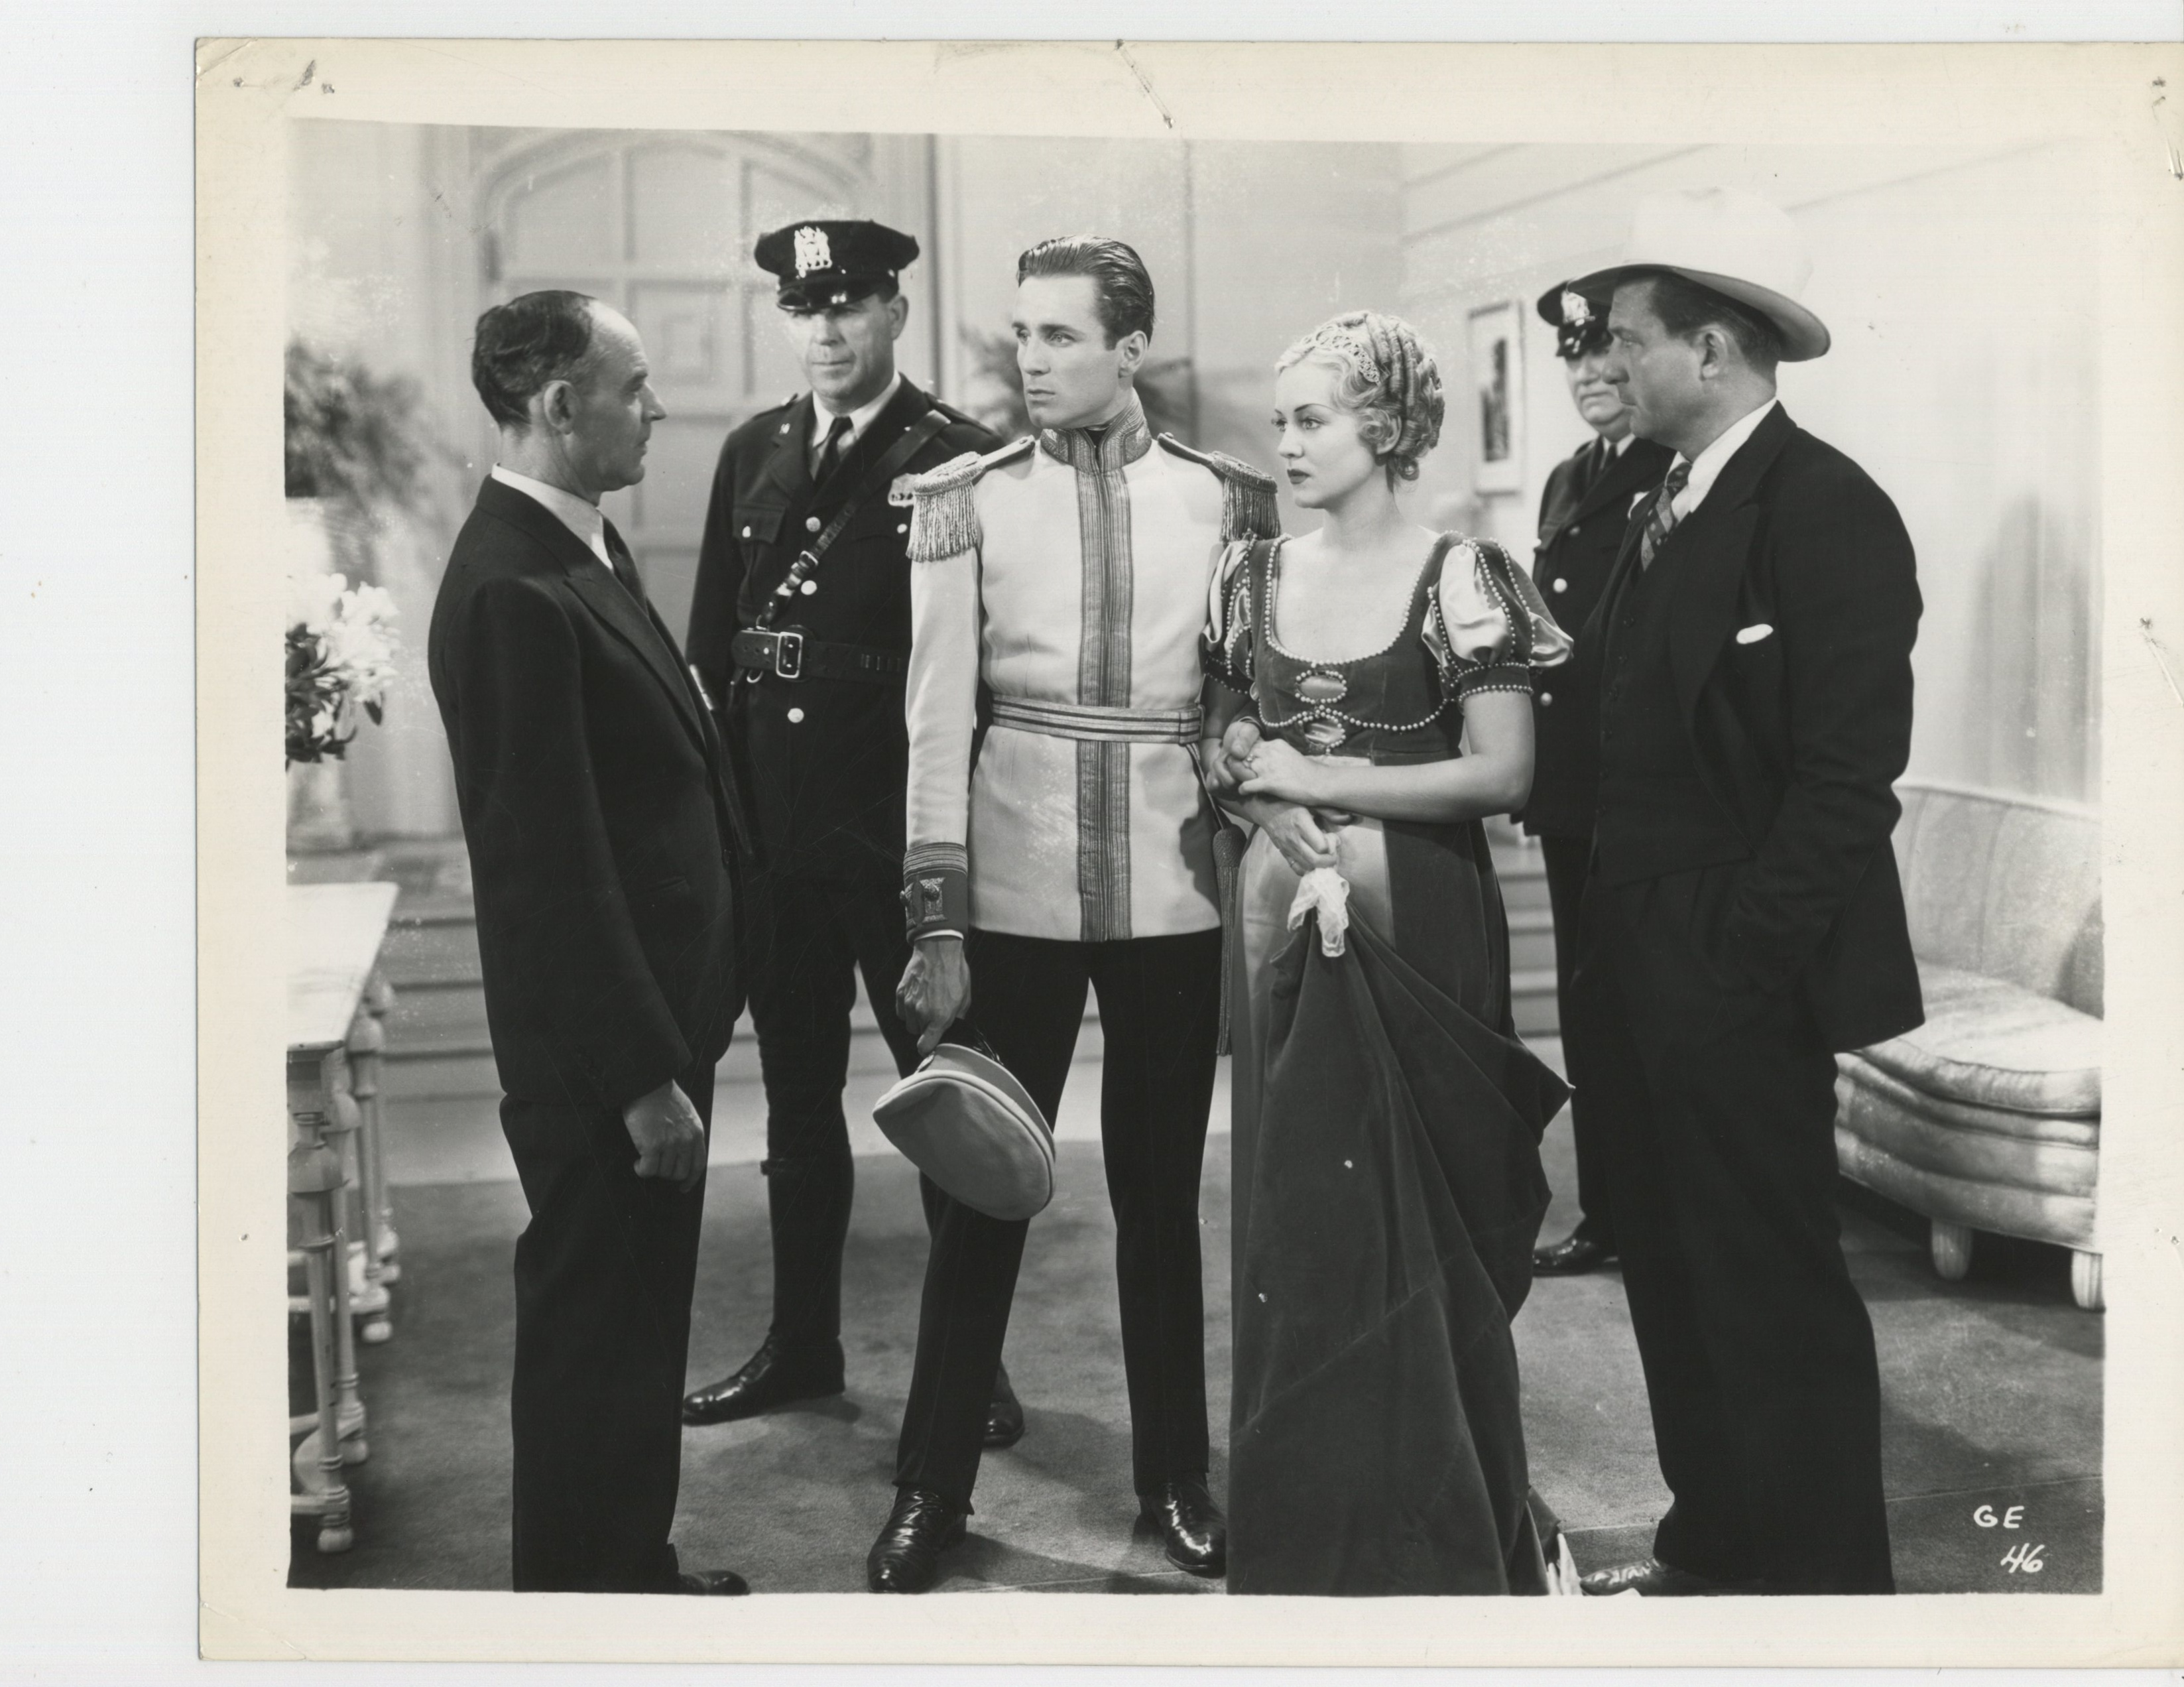 William Bakewell, Shirley Grey, and John Wray in Green Eyes (1934)